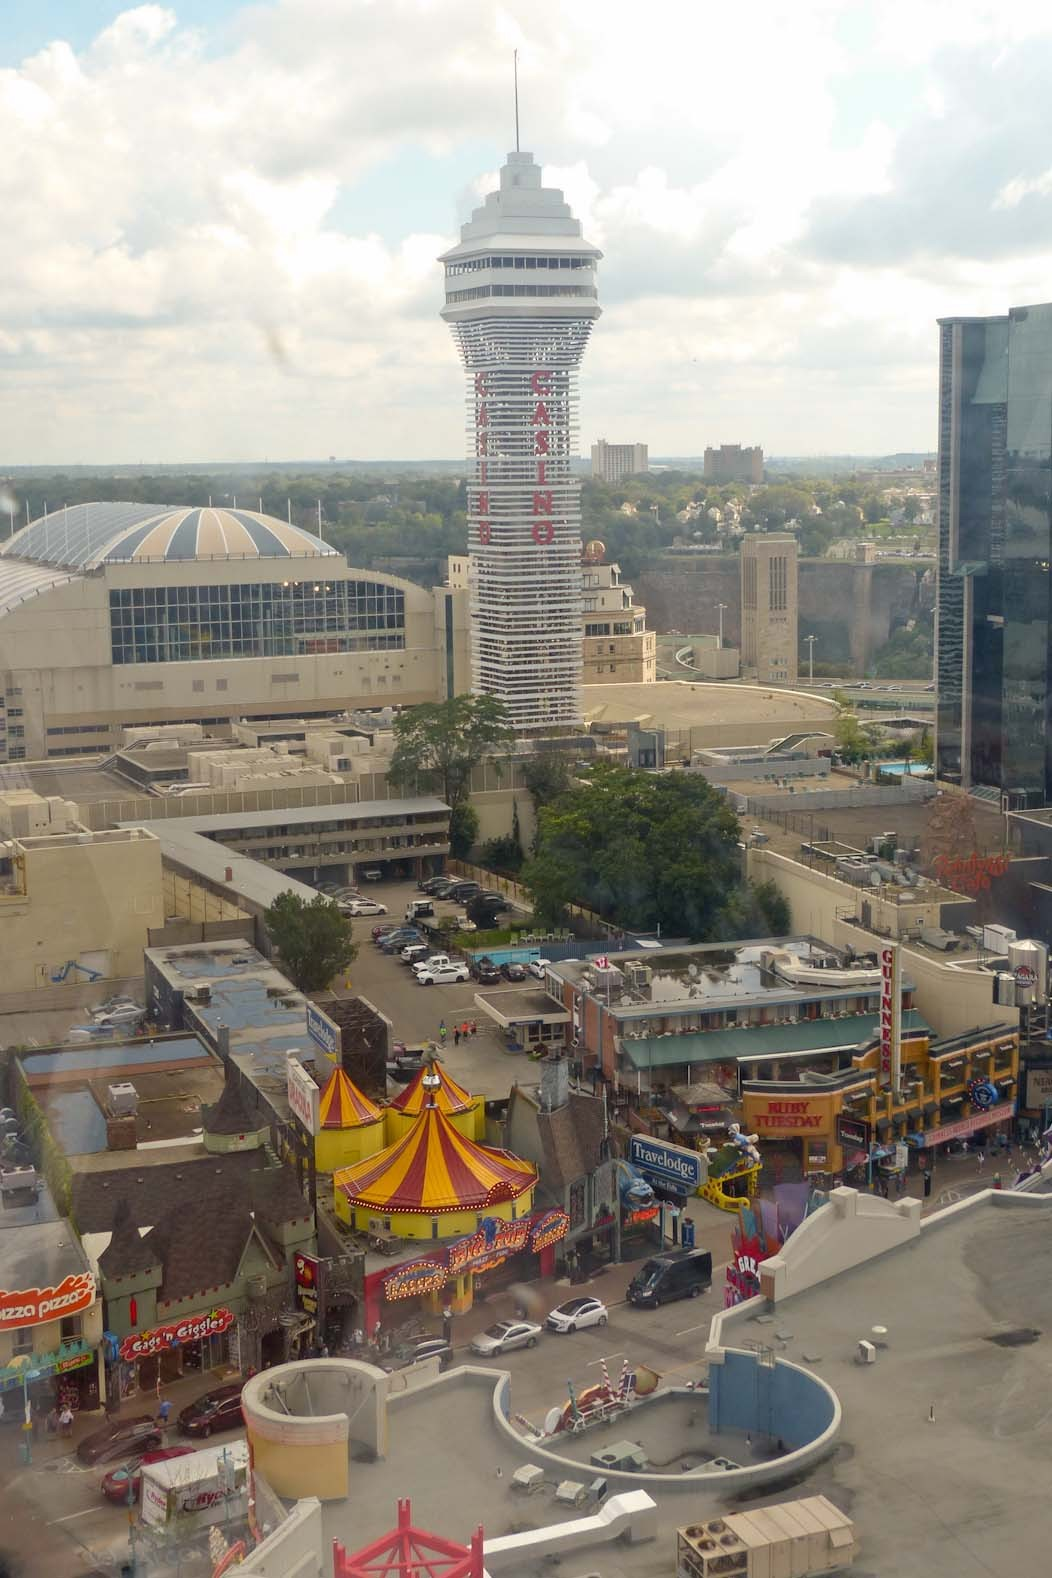 All the fun of the falls with the Clifton Hill Fun Pass, Niagara, Canada on Falcondale Life blog. A visit to Niagara Falls is an all-round resort experience with the Clifton Hill Fun Pass. Six fun attractions in one value ticket. Full review and photos.